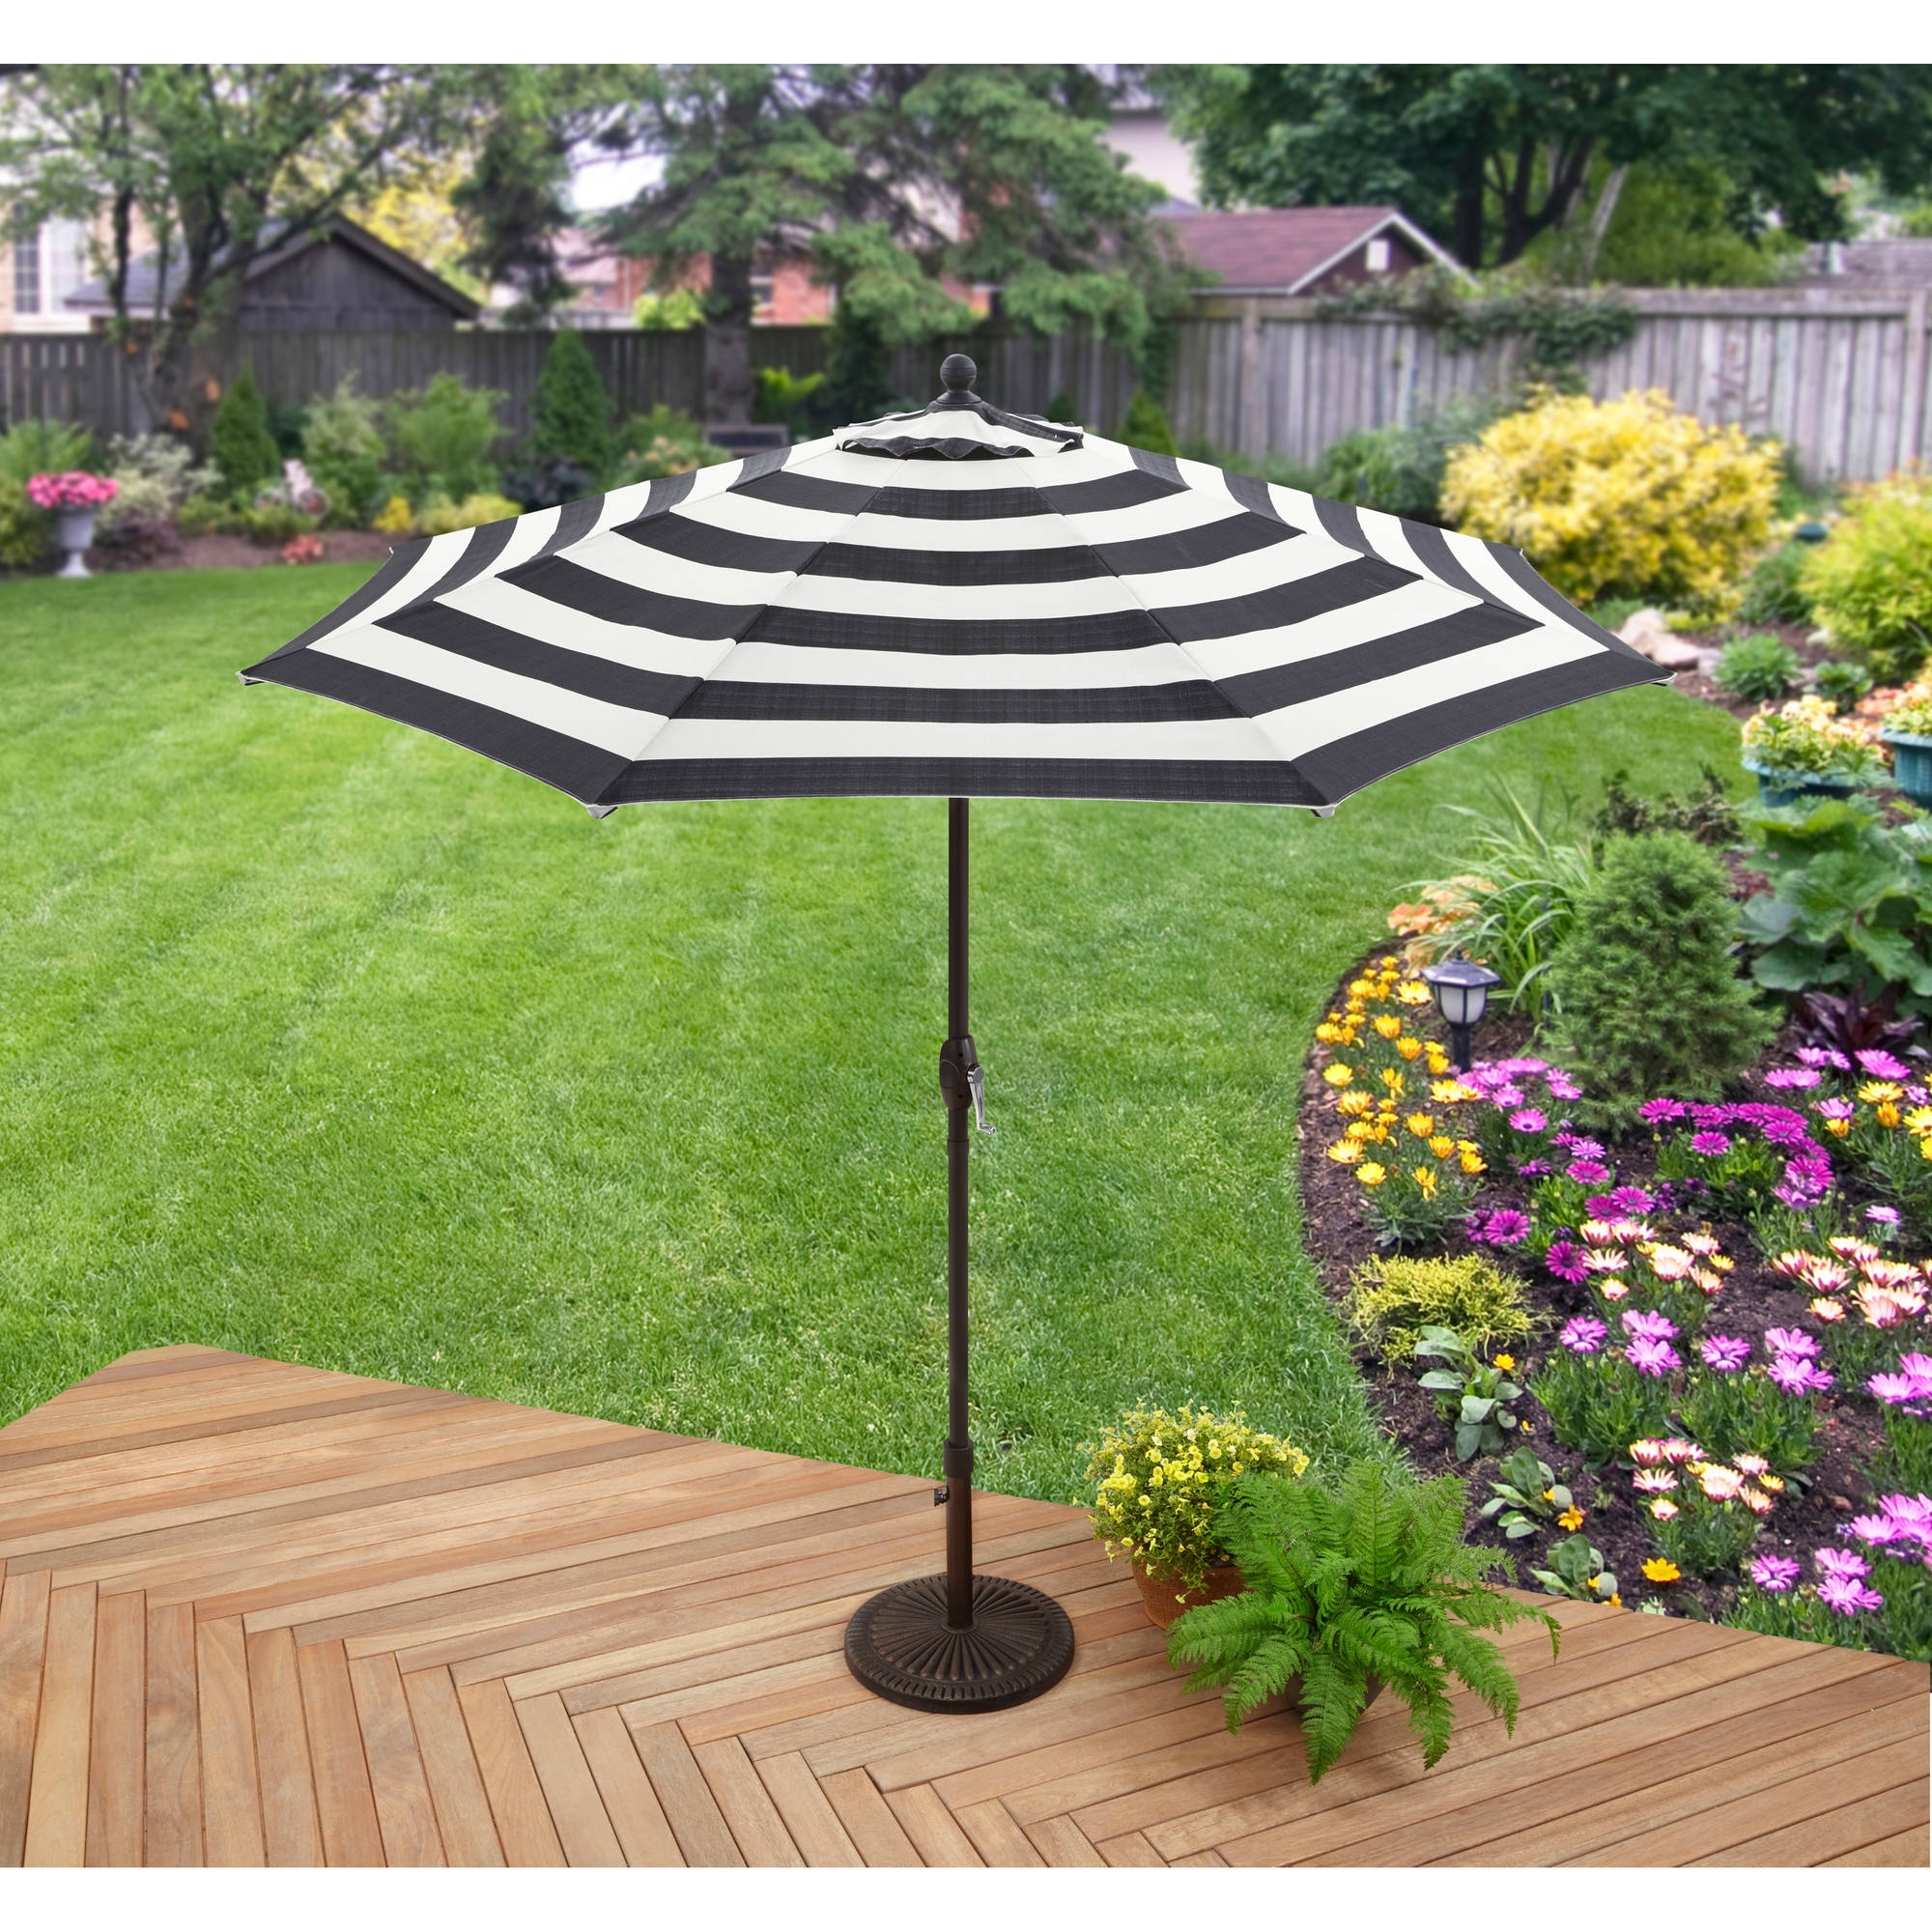 Sunbrella Patio Umbrellas At Walmart Inside Current Better Homes And Gardens 9' Market Umbrella, Cabana Stripe – Walmart (View 13 of 20)